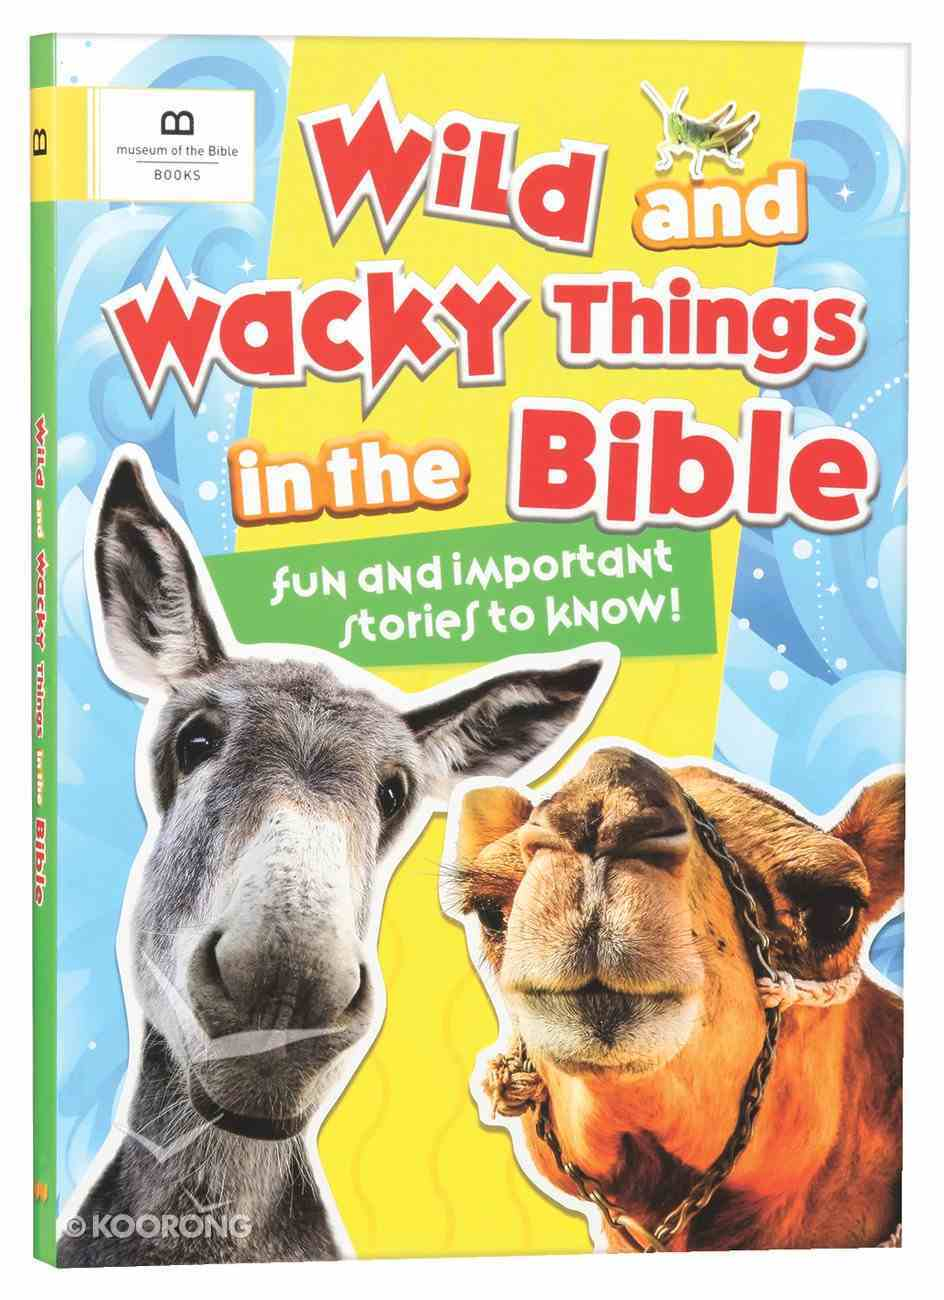 Wild and Wacky Things in the Bible: Fun and Important Stories to Know! Paperback